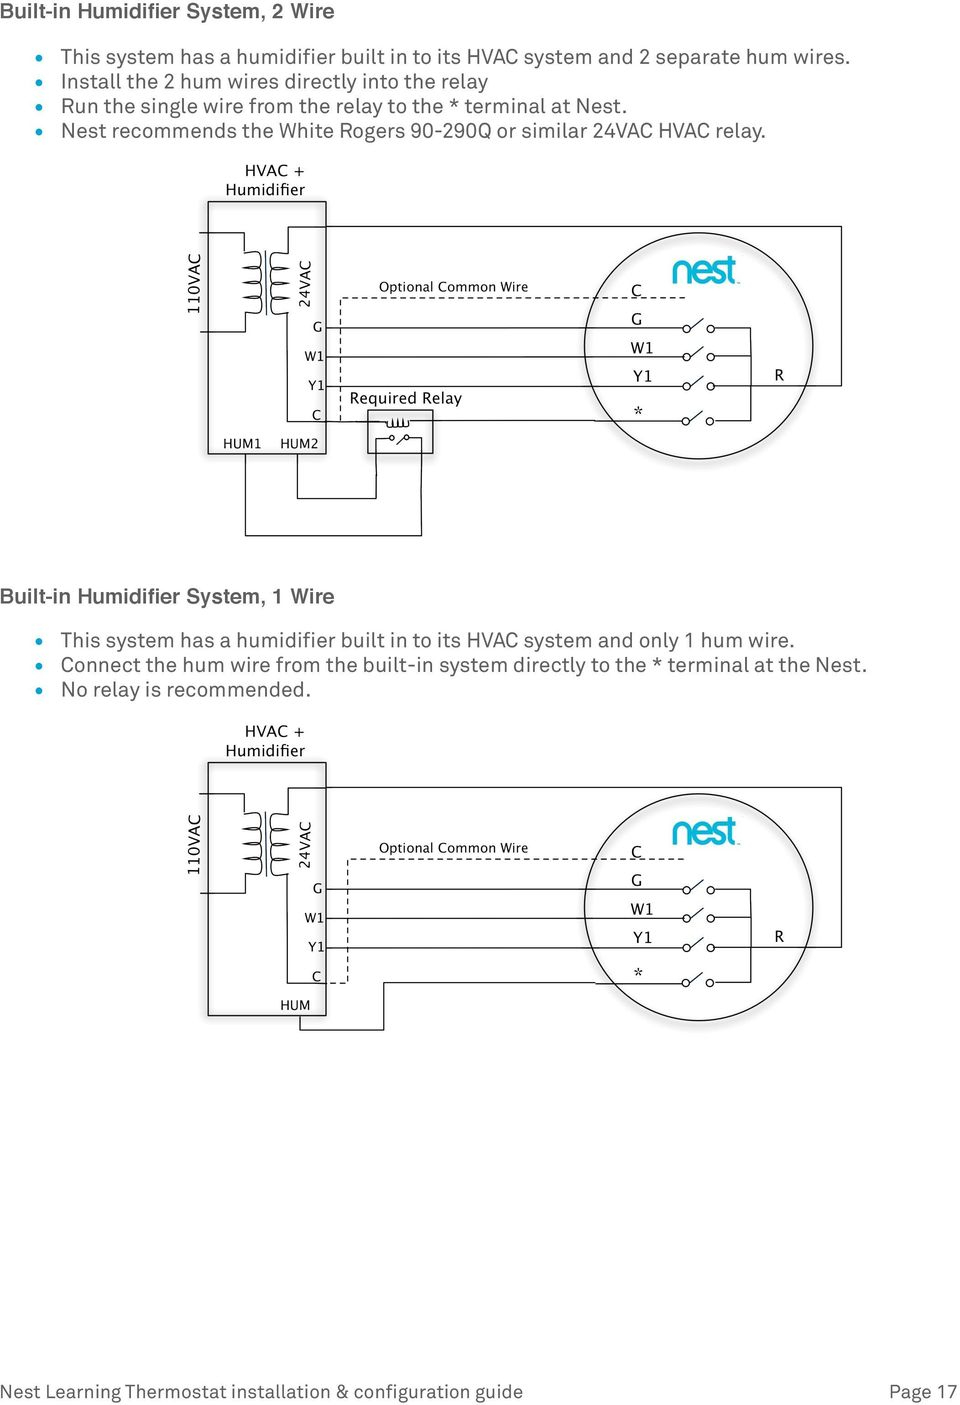 Nest Wiring Diagram S1 S2 | Wiring Library - Nest Base Wiring Diagram